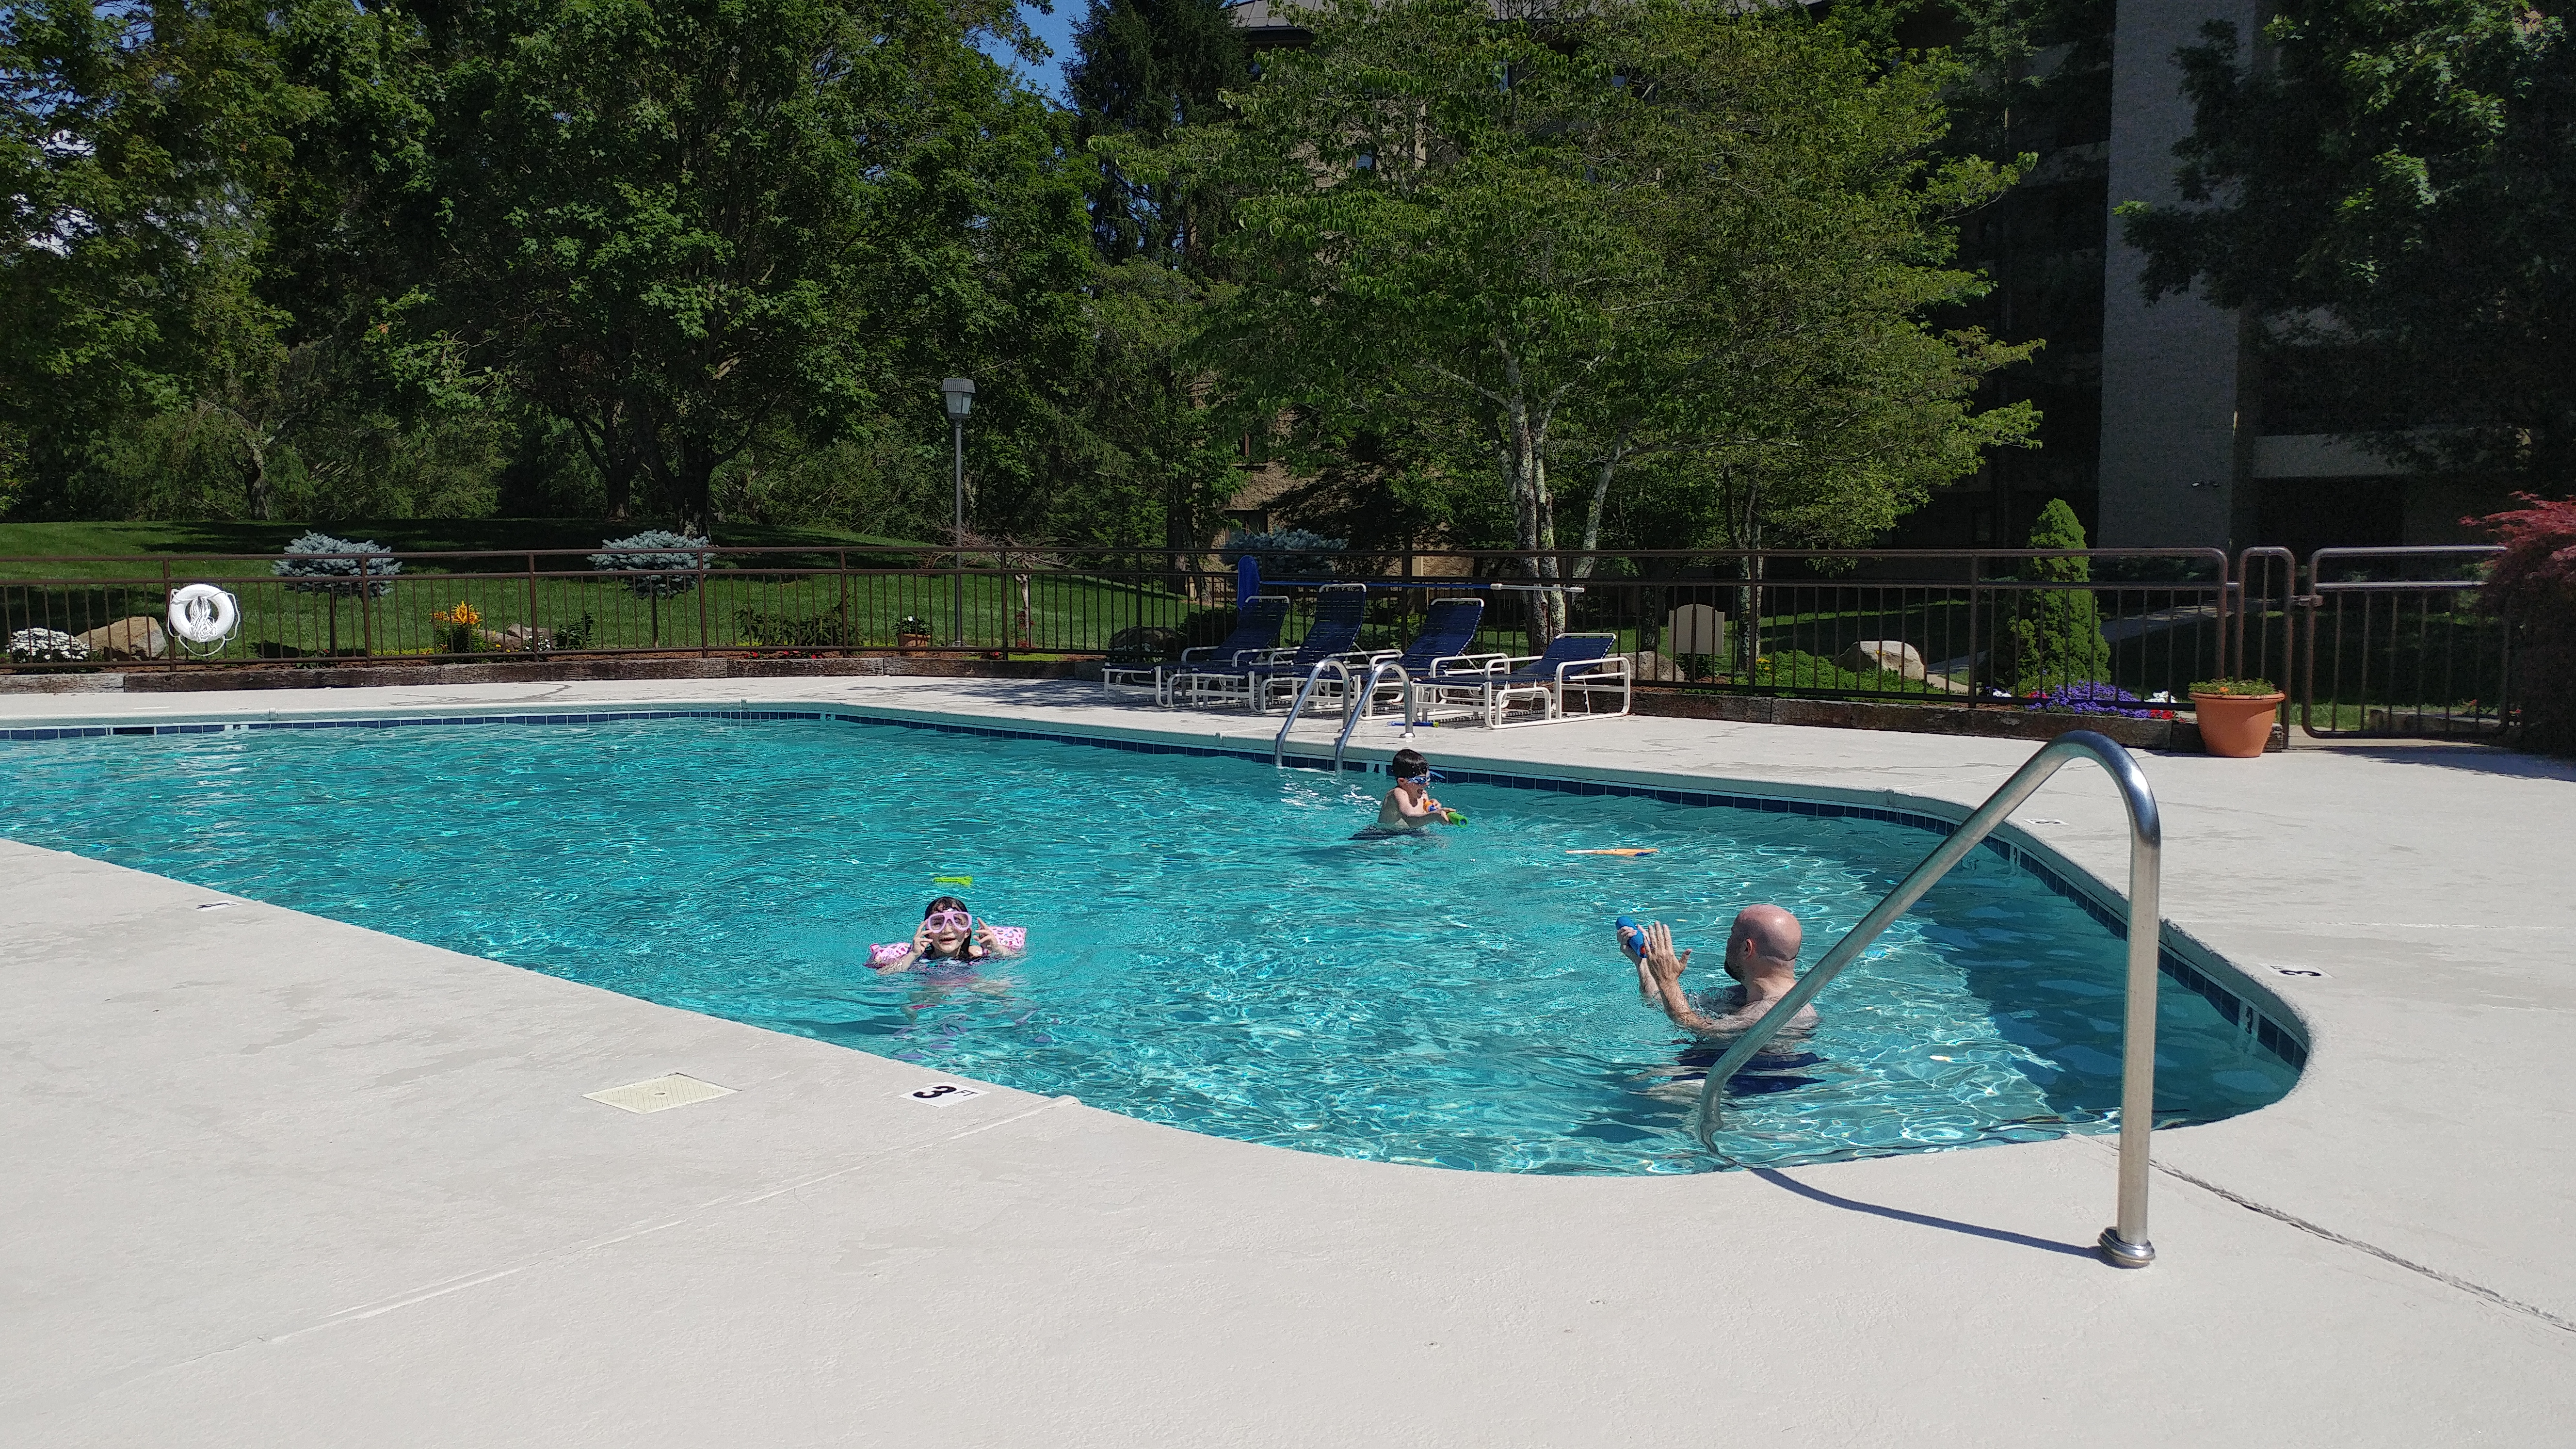 Father, daughter and son at the pool